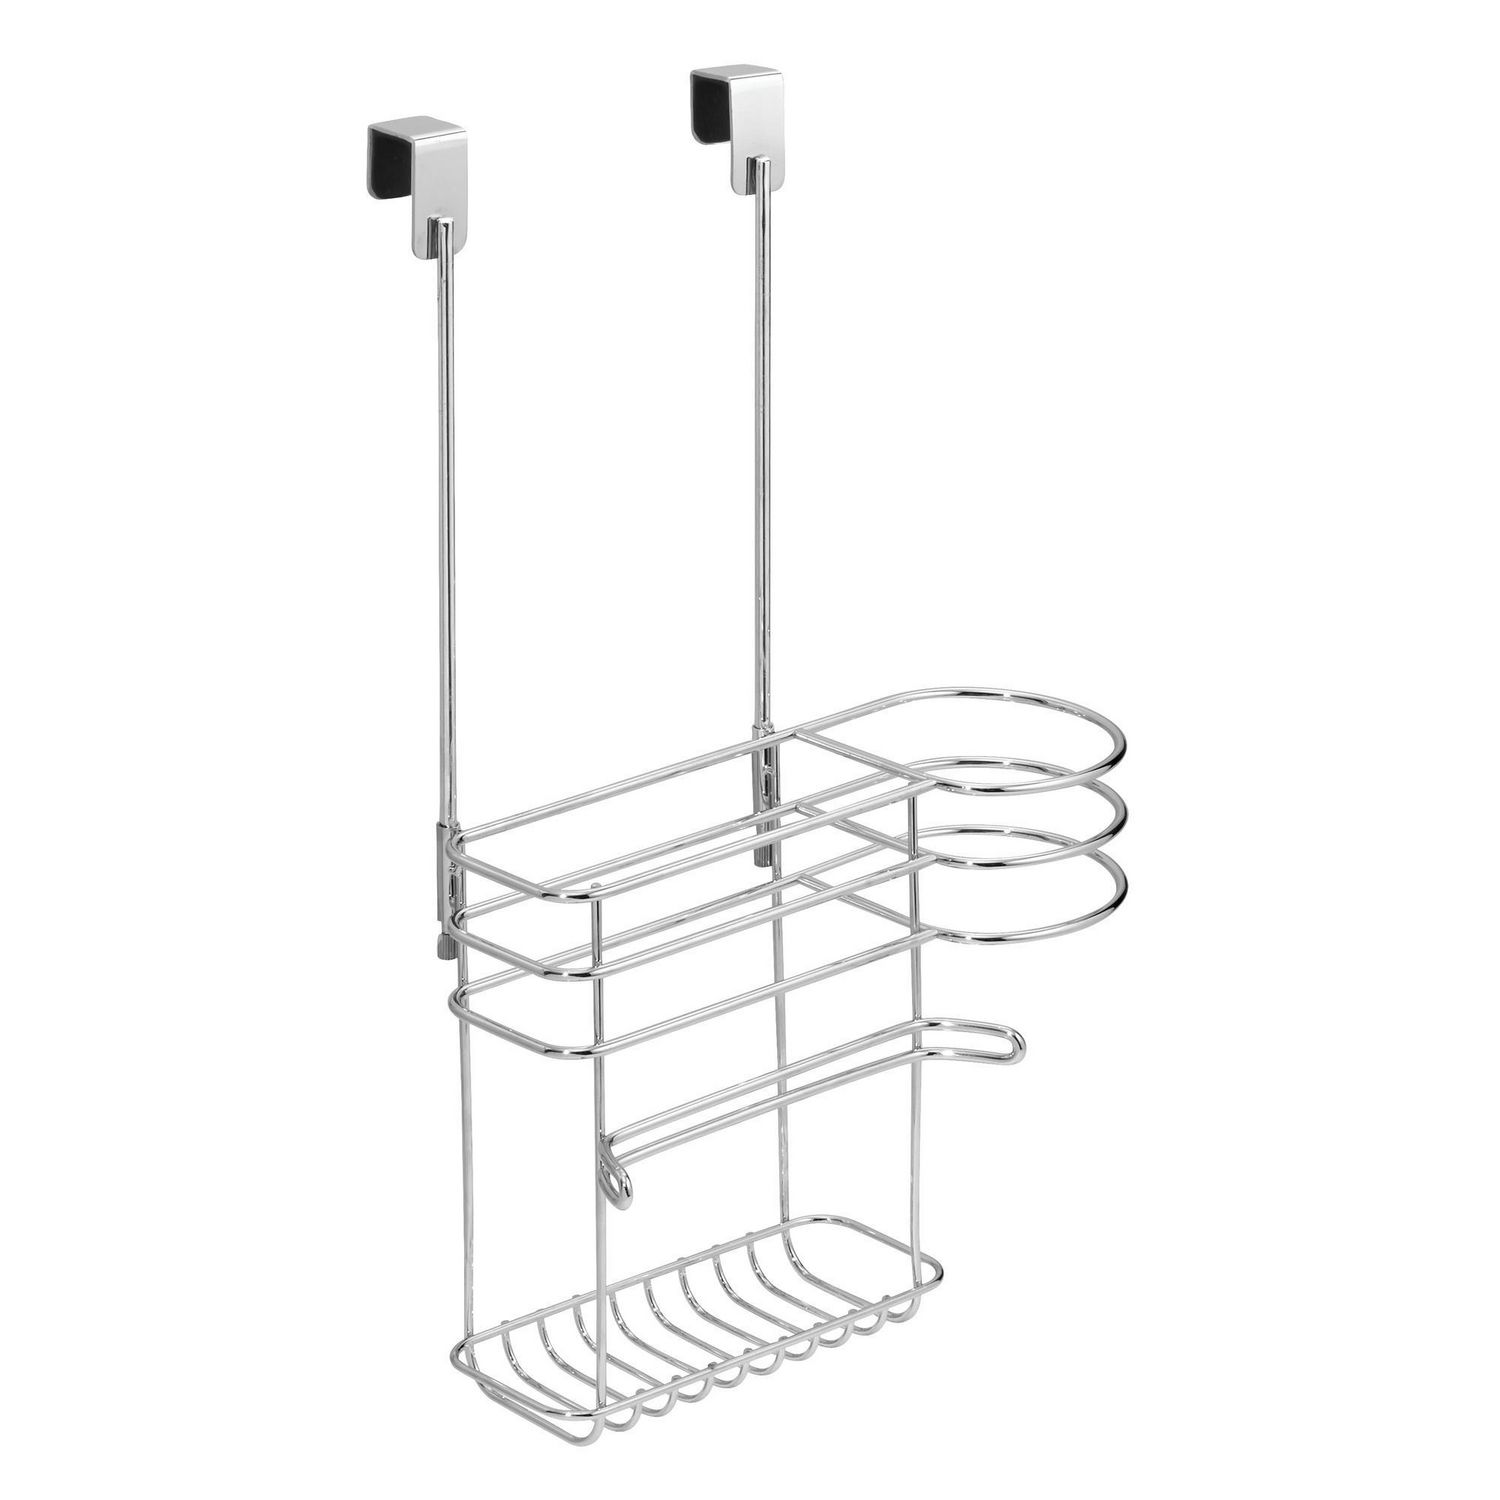 Wondrous Mainstays Chrome Over The Cabinet Hair Care Tools Holder Interior Design Ideas Ghosoteloinfo